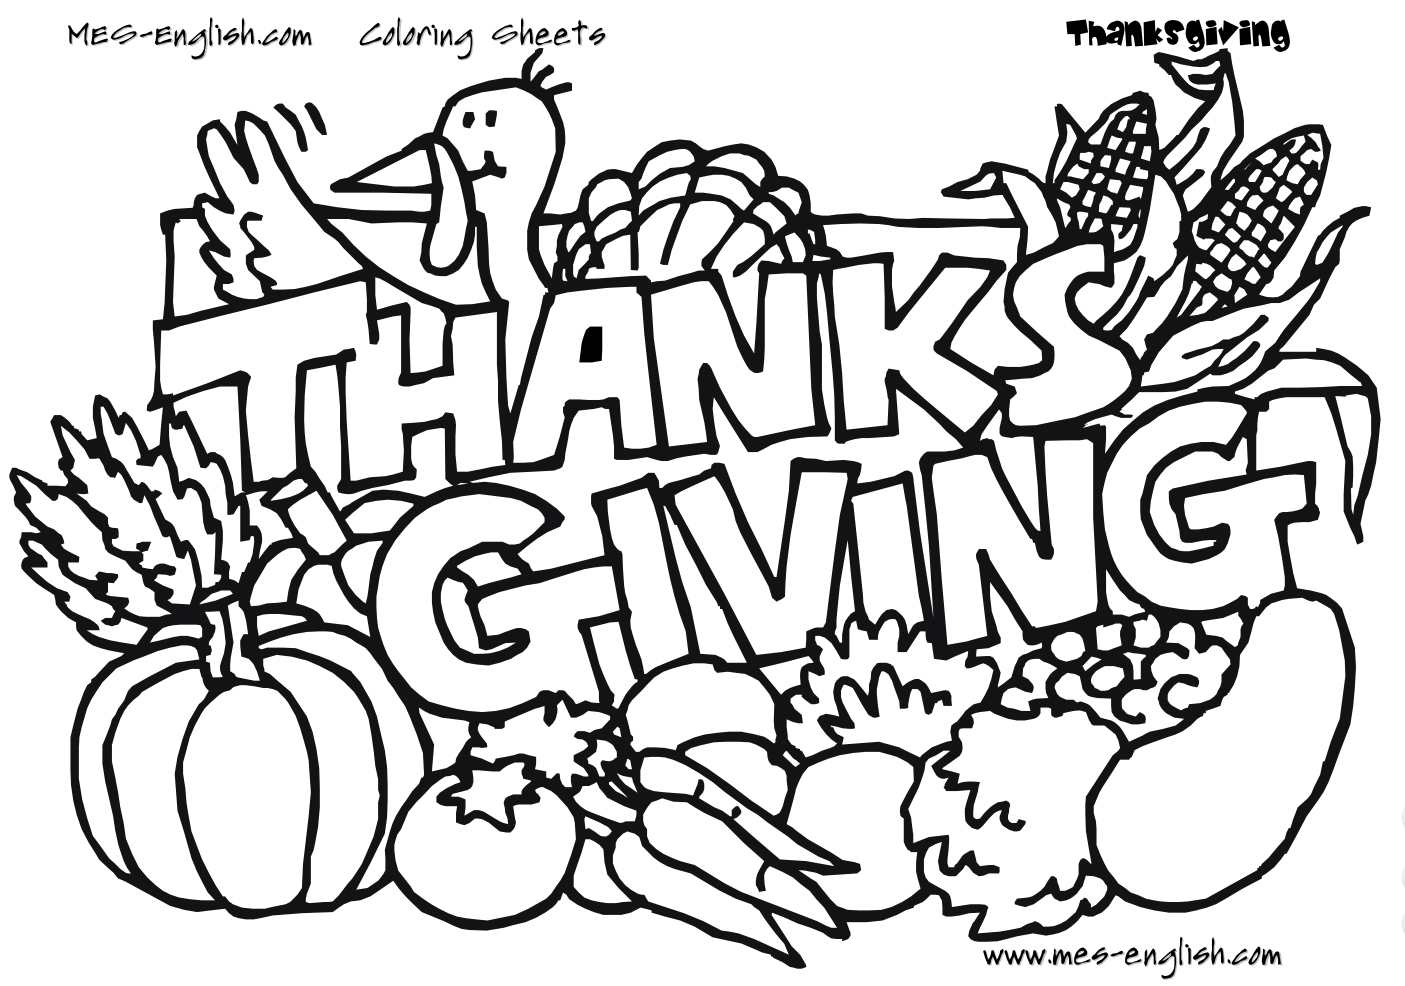 coloring pages for thanksgiving for kids - 8 free thanksgiving printables for your home and family